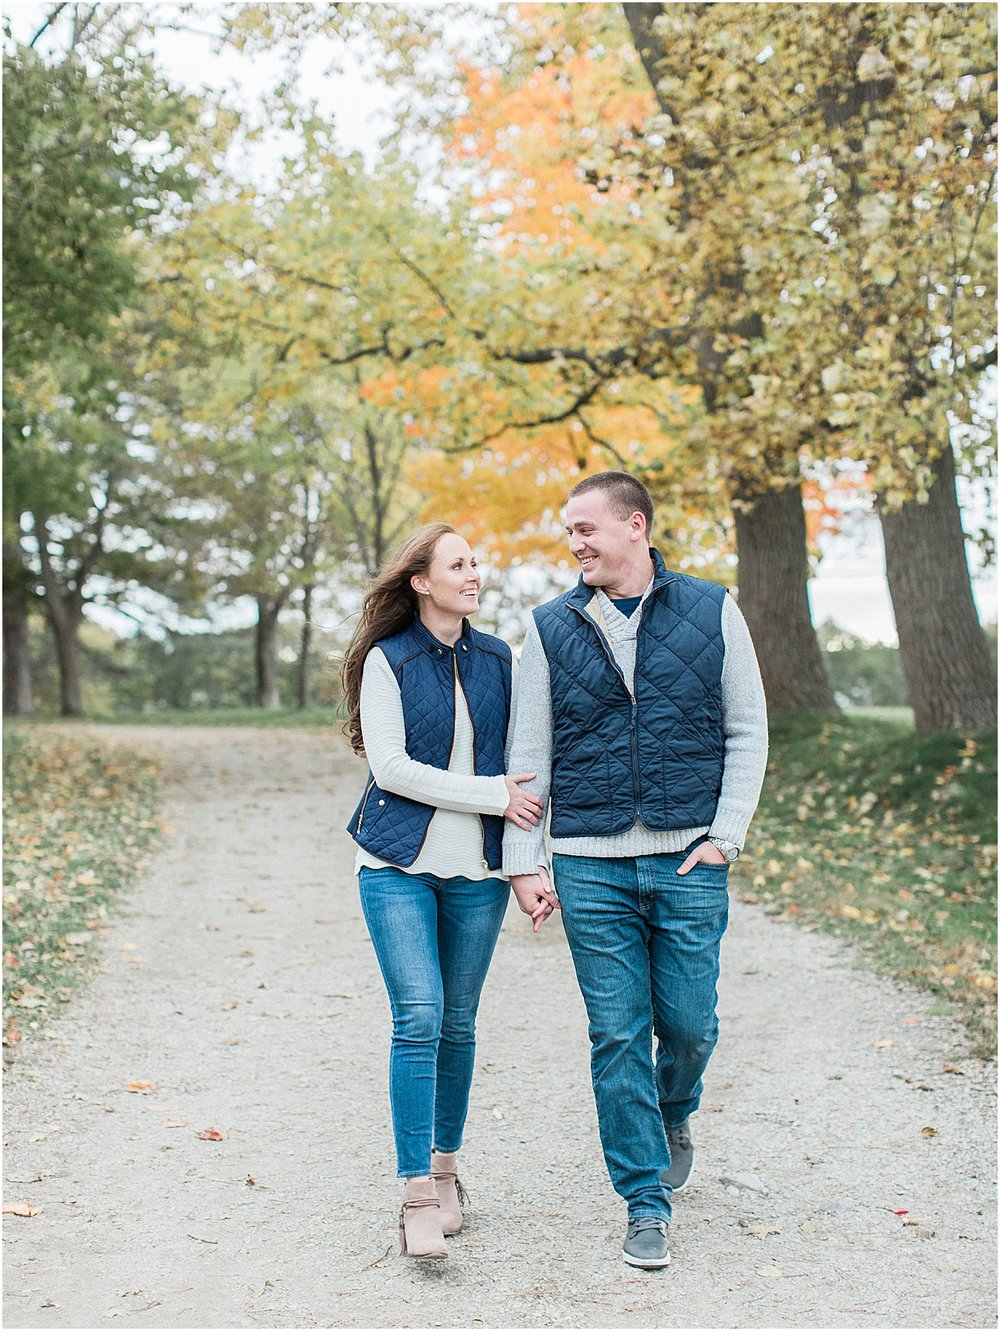 sarah_wille_engagement_worlds_end_hingham_fall_cape_cod_boston_wedding_photographer_meredith_jane_photography_photo_1730.jpg